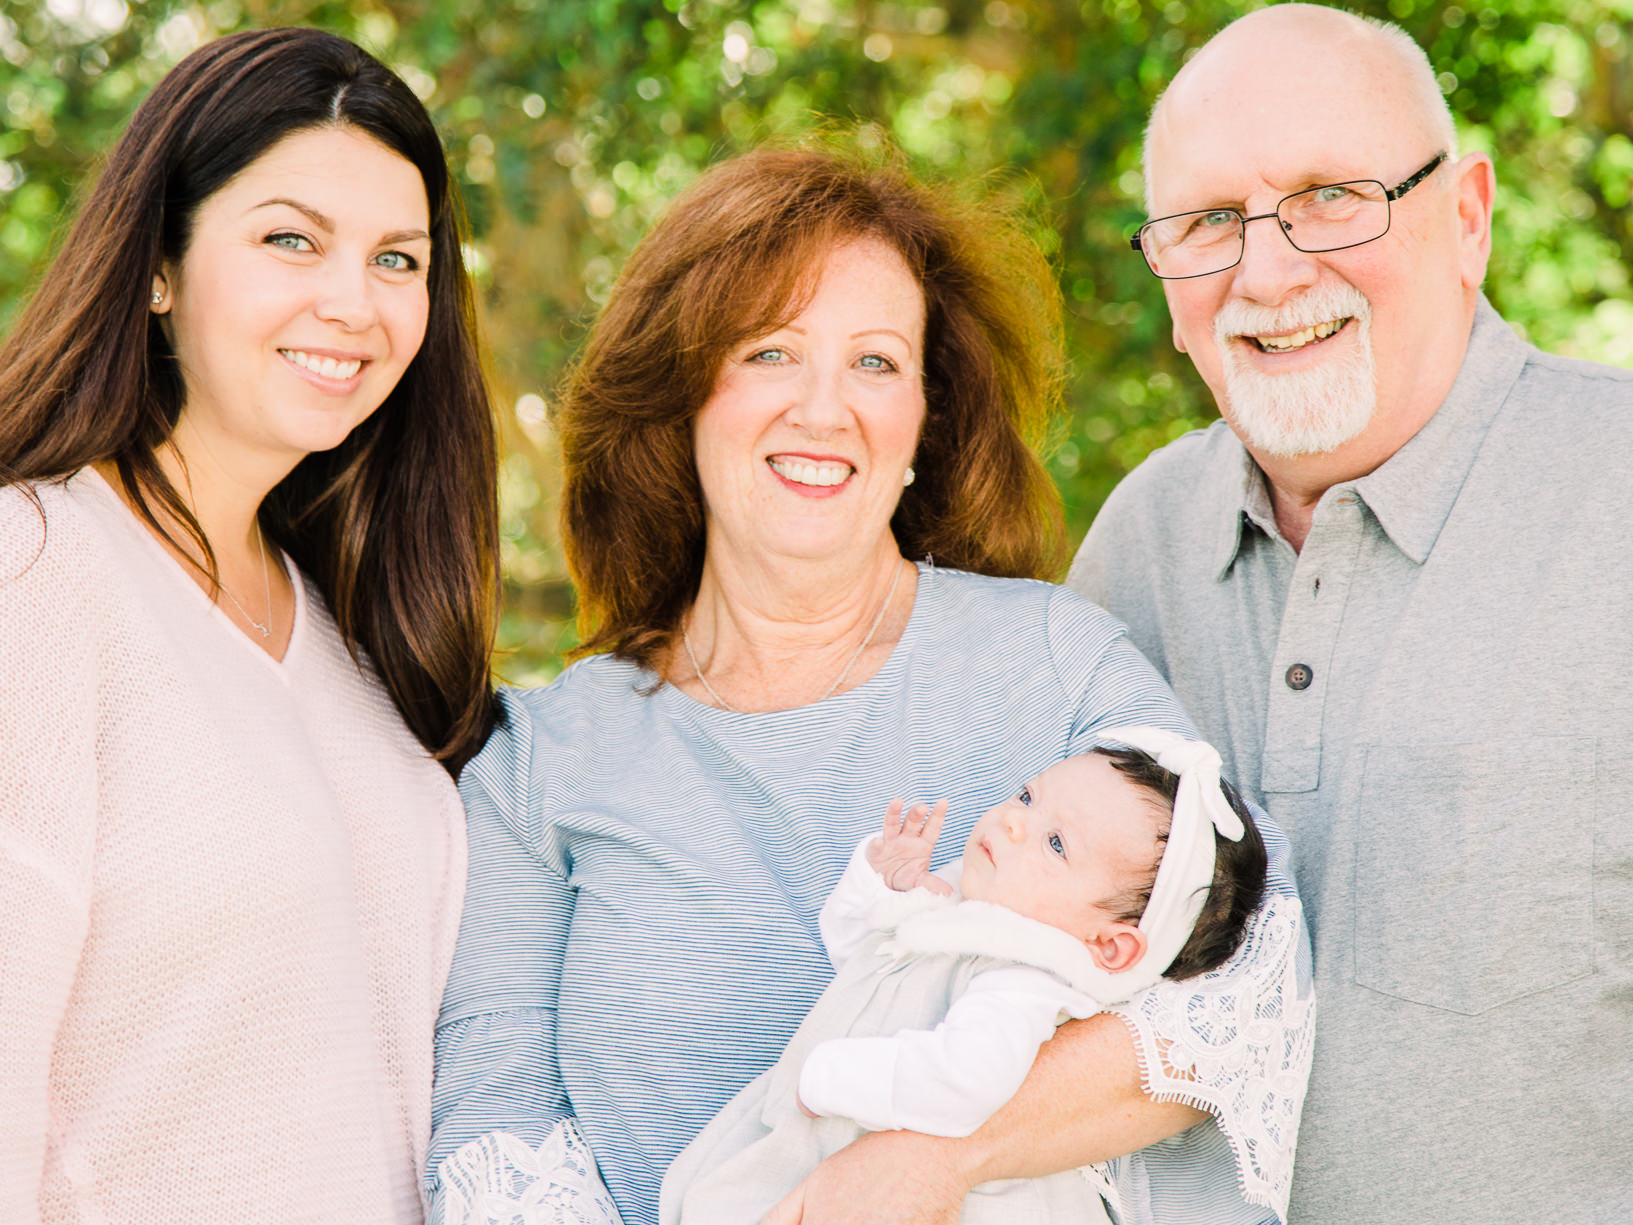 Russell Family Portraits - Valley Park, Hermosa Beach, CA